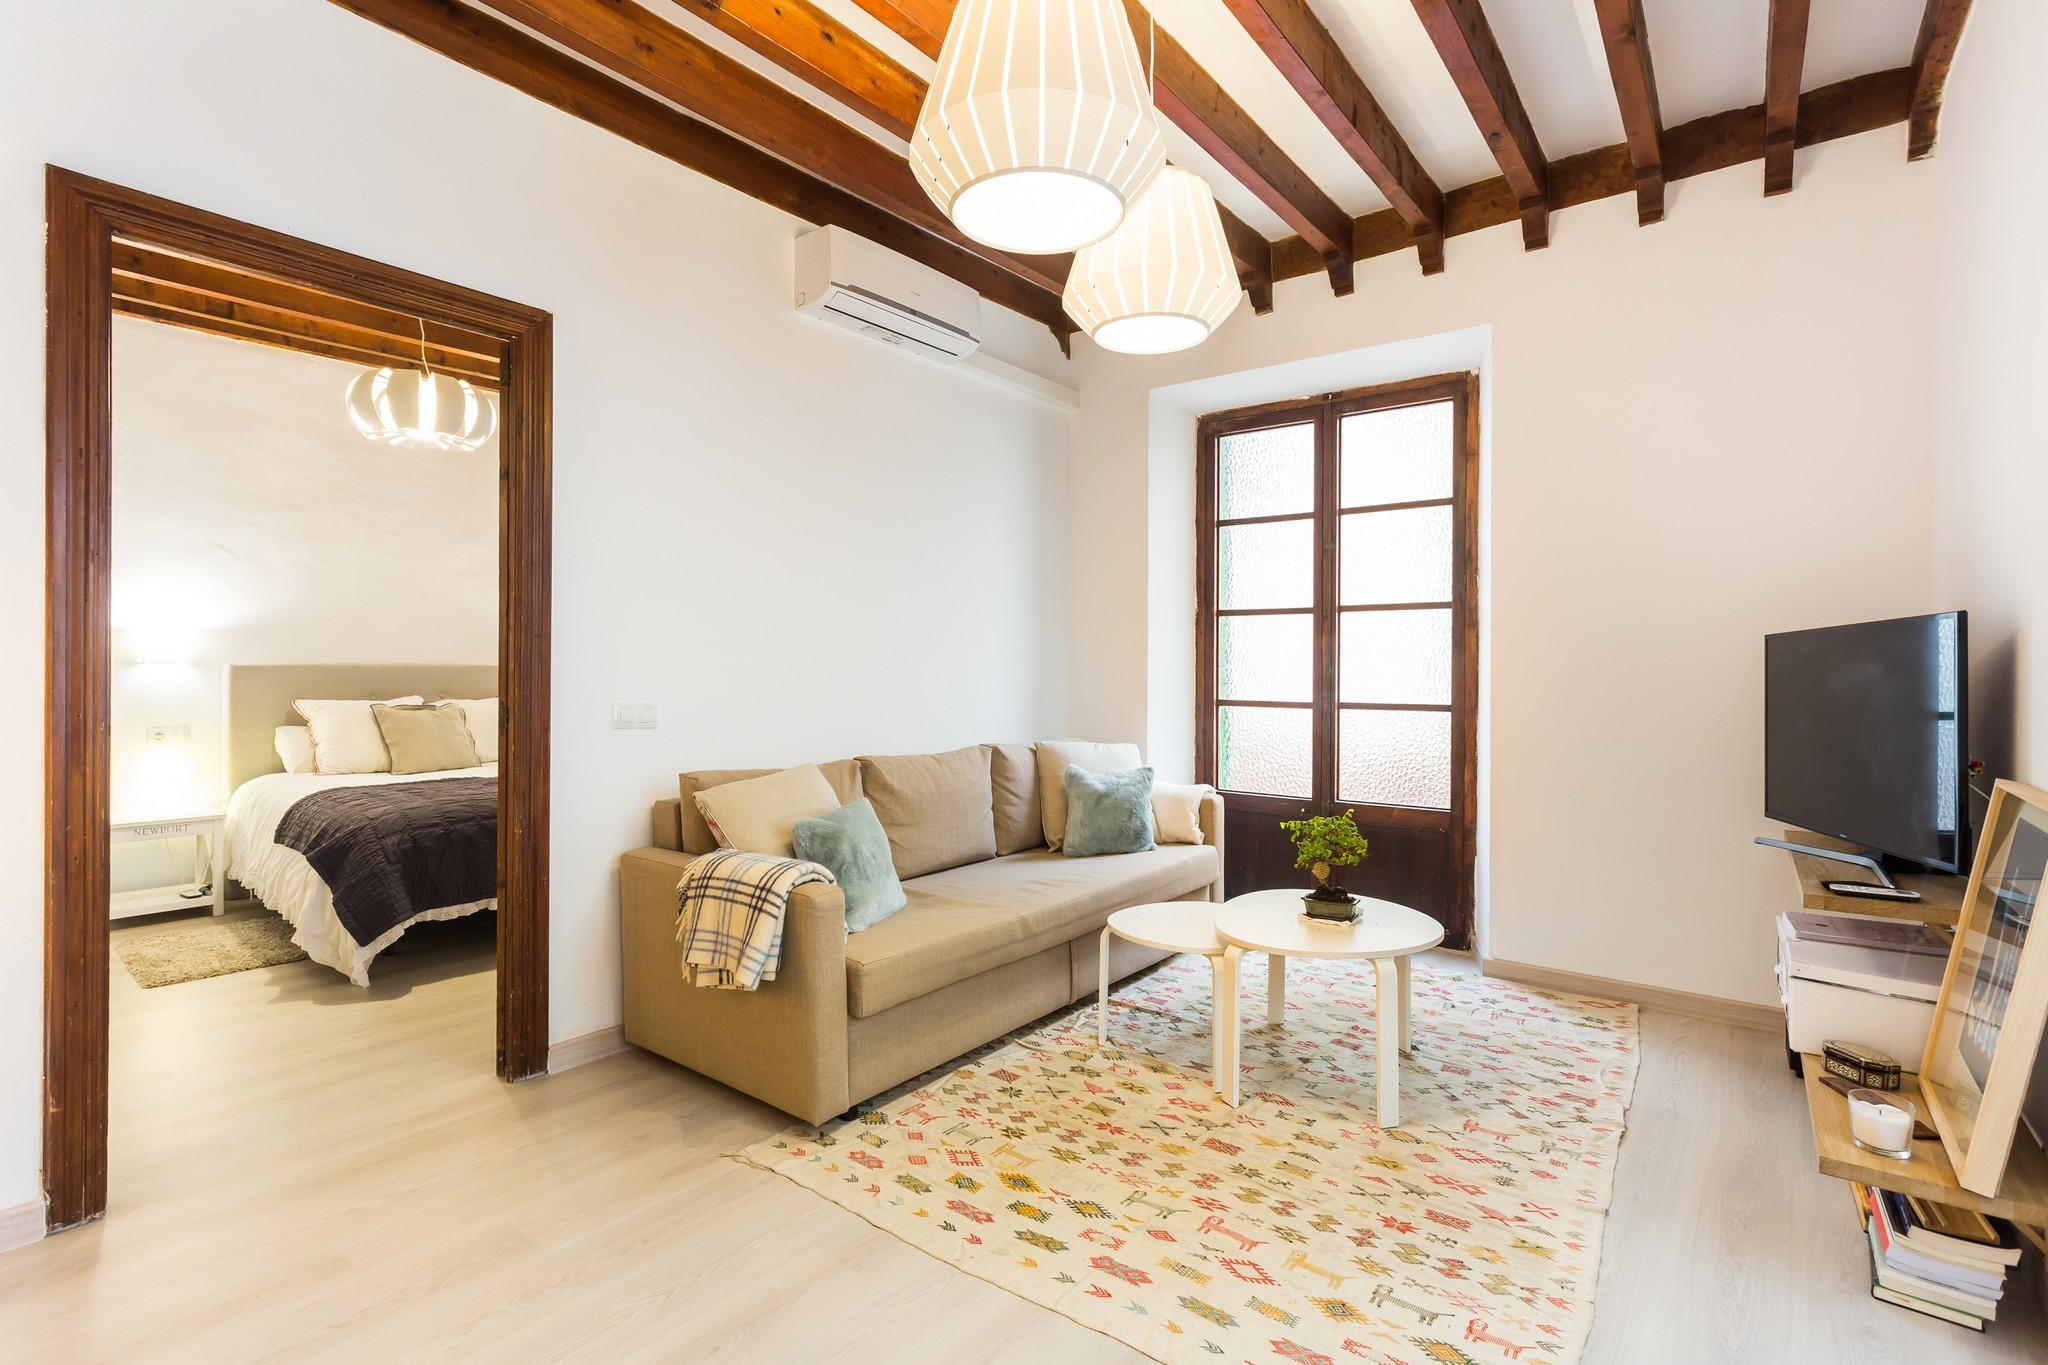 Condominium for sale Palma de Mallorca, Spain